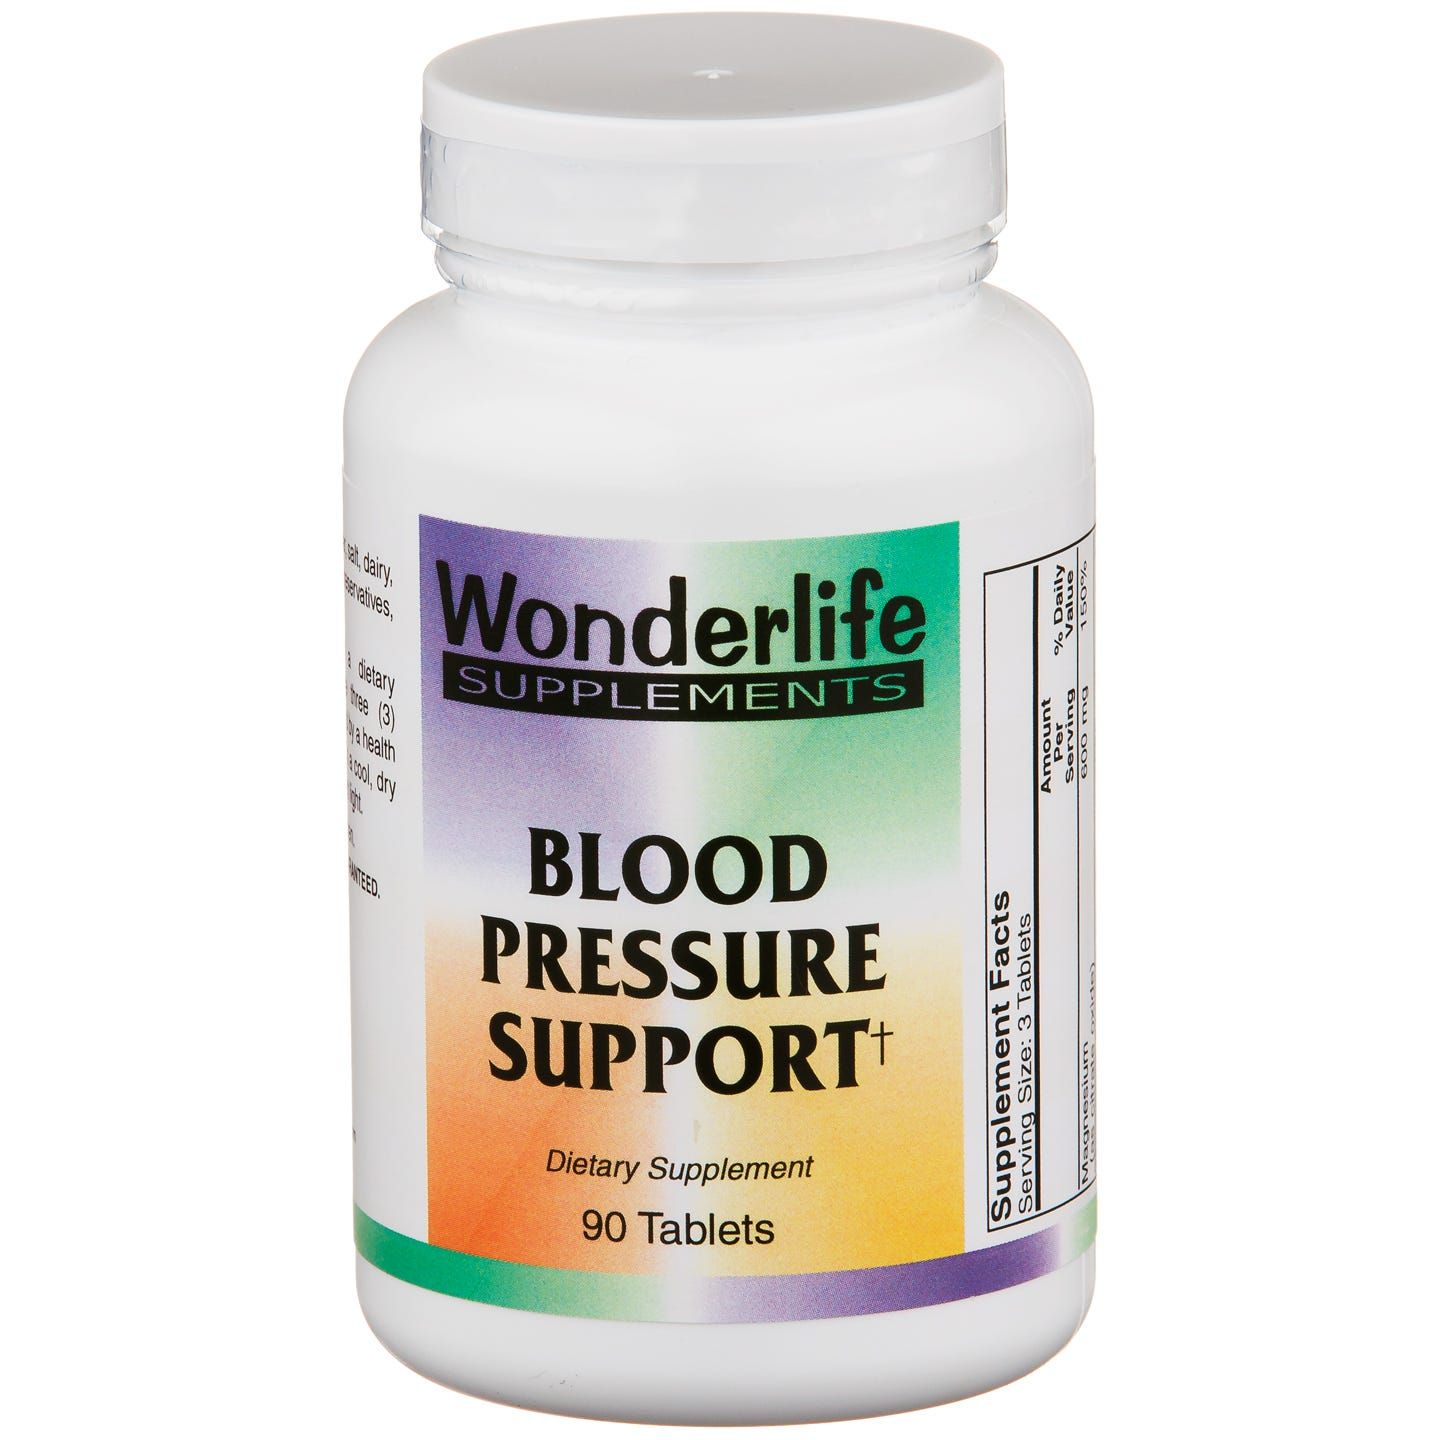 Blood Pressure Support (90 ct) - Wonderlife - Rapid Diet Weight Loss Products Shop